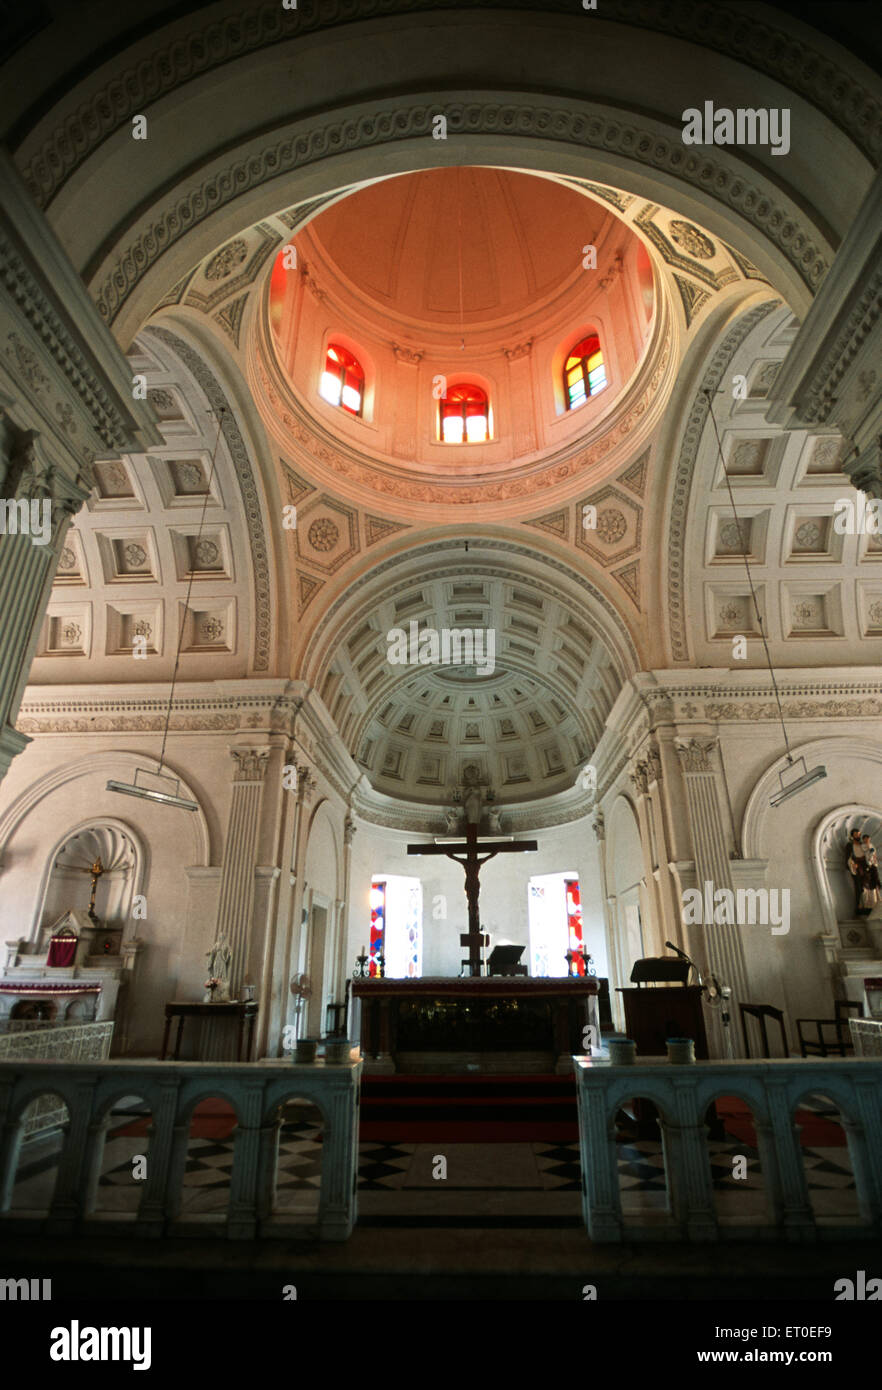 Interior in church our lady of angels ; Pondicherry ; Tamil Nadu ; India Stock Photo